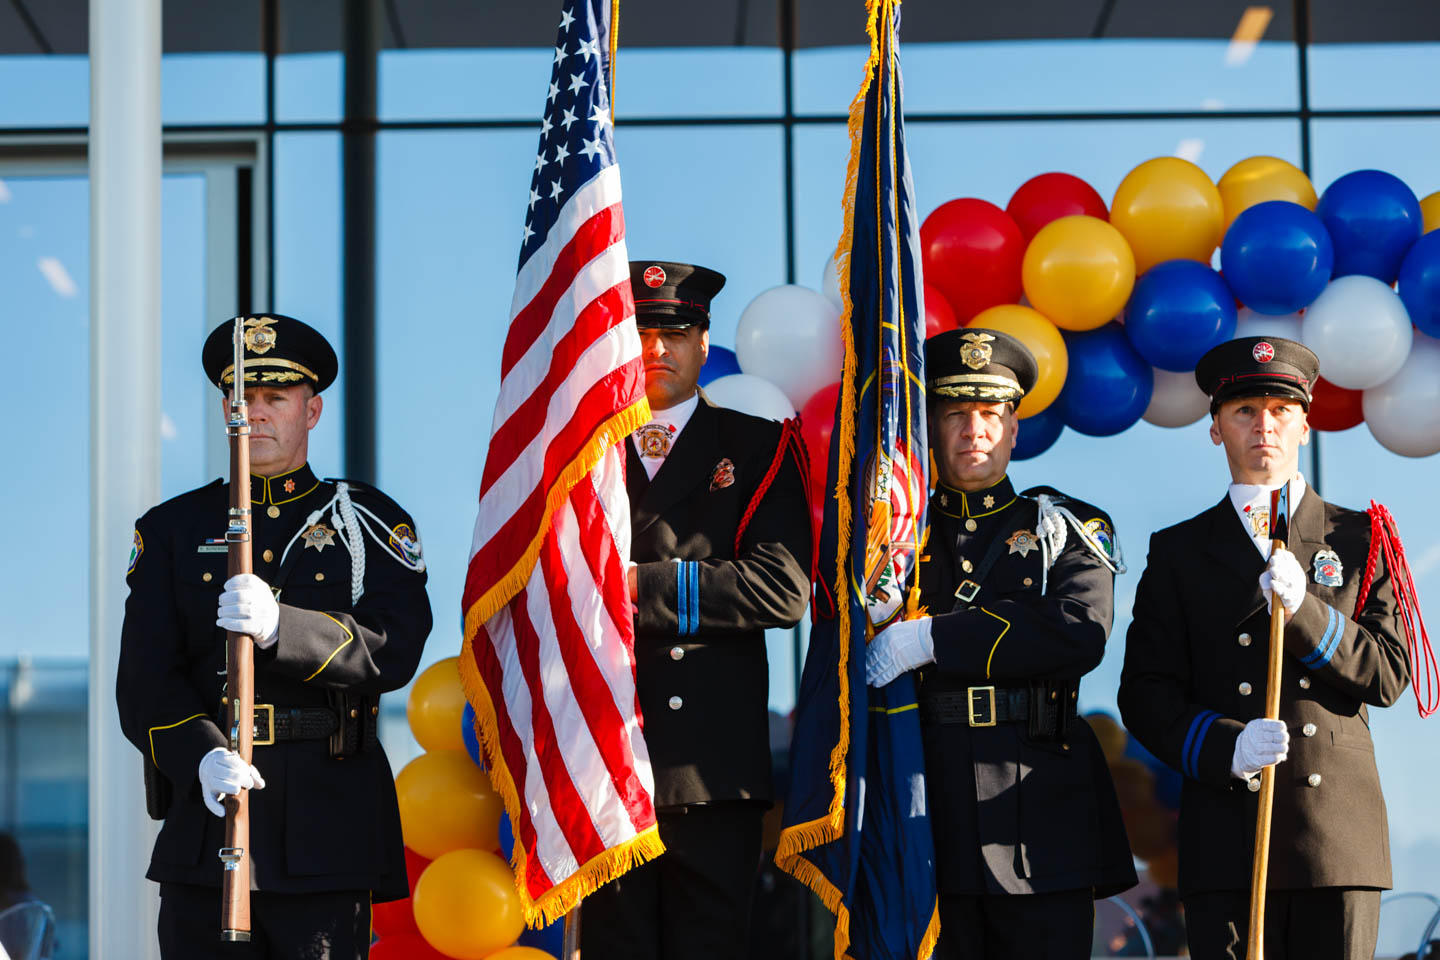 The Color Guard of police and fire department and emergency services